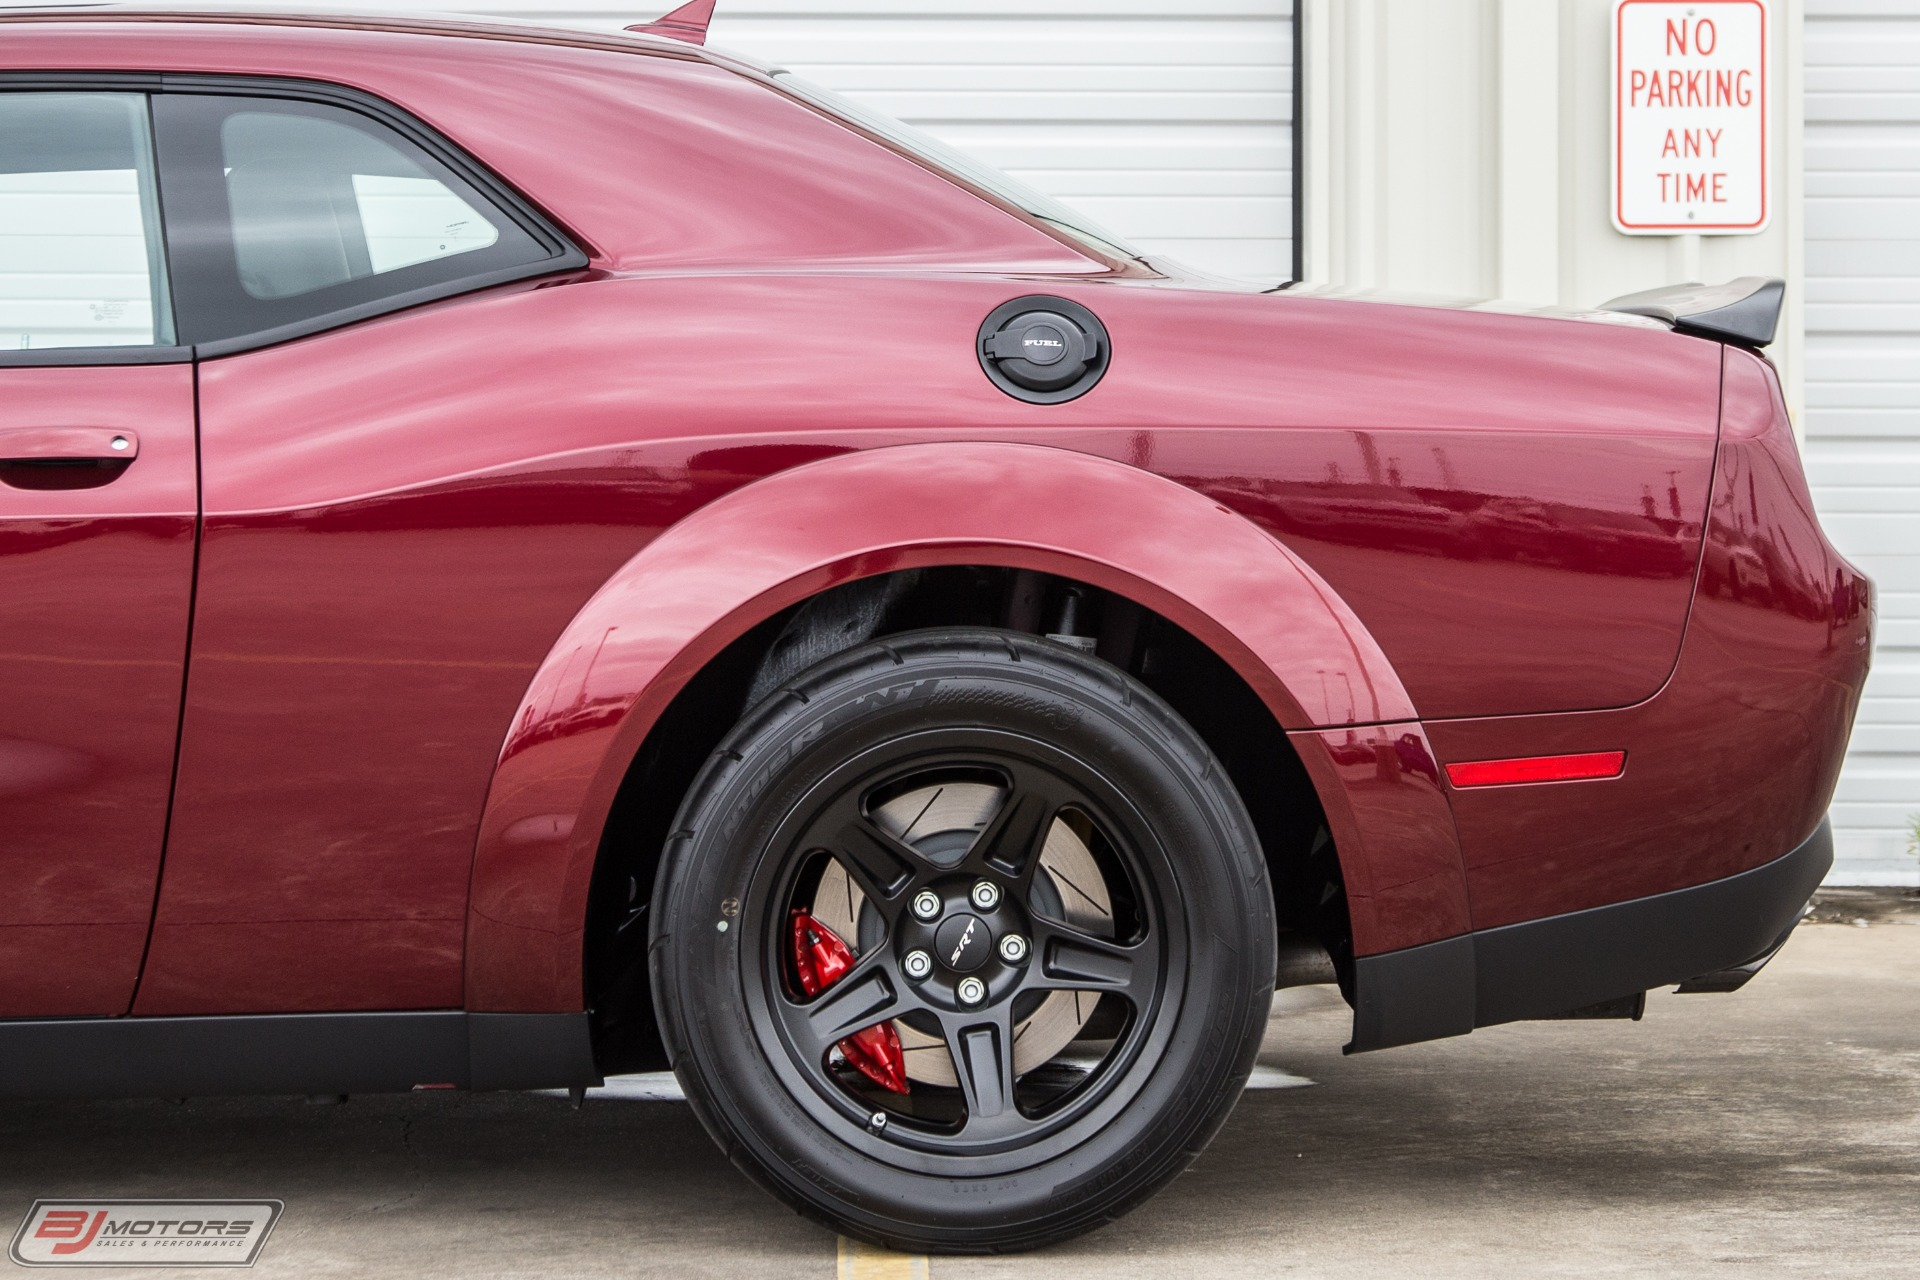 Used-2018-Dodge-Challenger-SRT-Demon-Only-40-Miles-comes-with-Crate